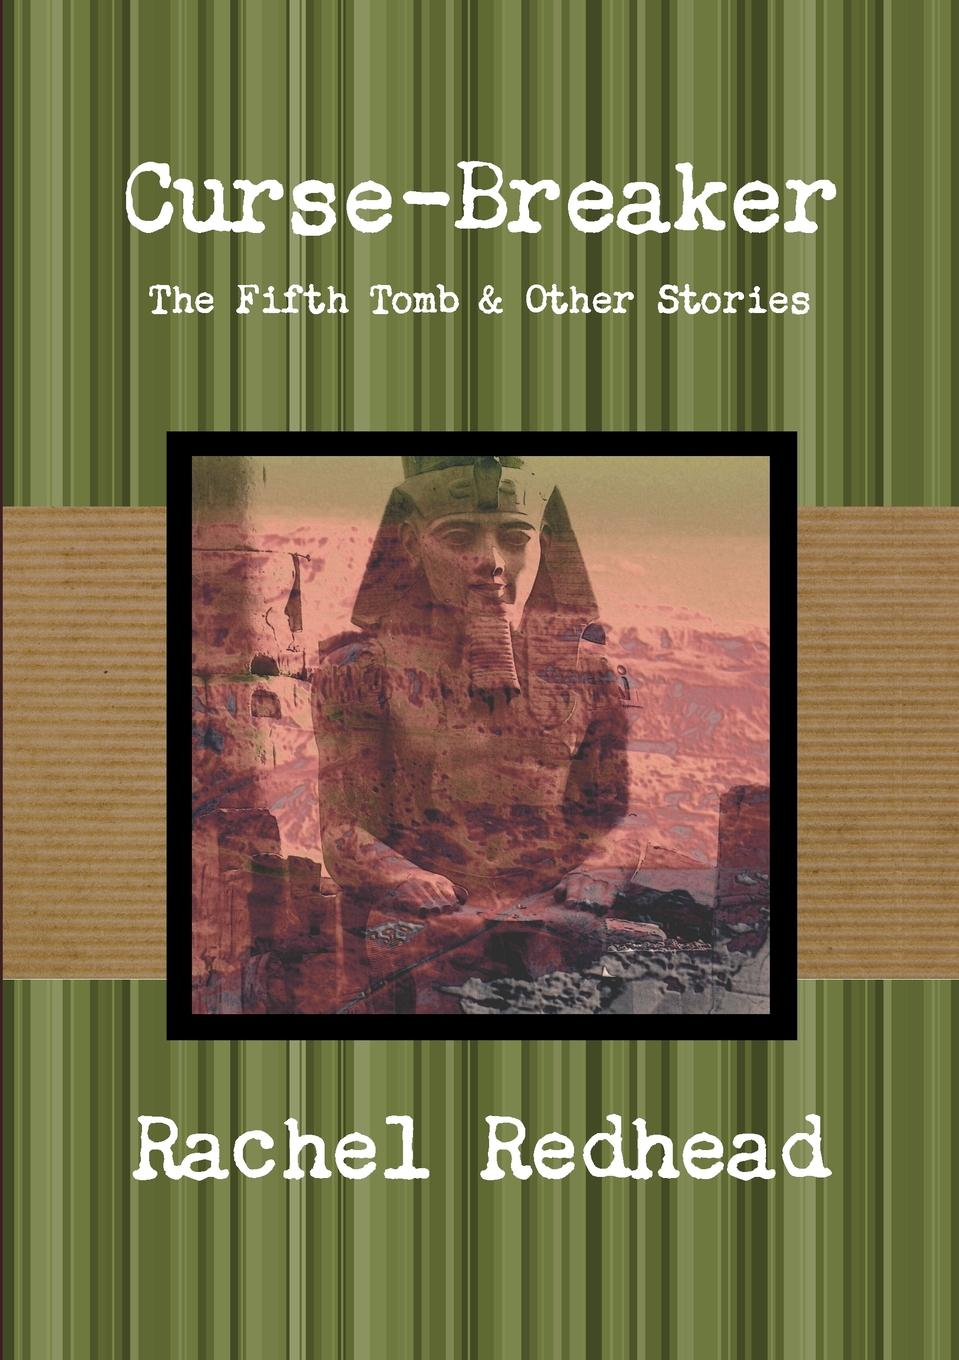 Rachel Redhead Curse-Breaker. The Fifth Tomb wingfield lewis the curse of koshiu a chronicle of old japan